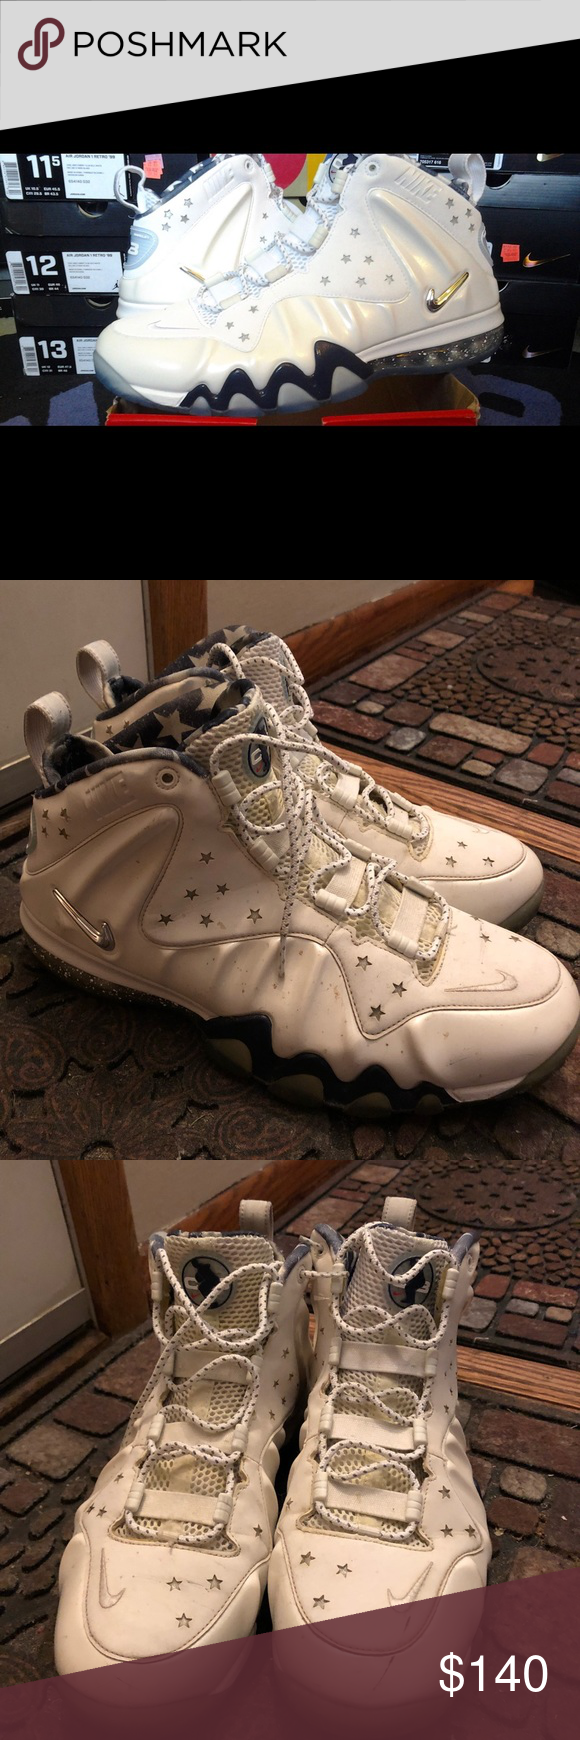 buy online 4d3e7 5a8fd Charles Barkley Role Model sz 11.5 Nike Air Barkley Posite Max PRM Premium  QS Chuckposite USA White Brand  Nike Material  Leather Style  Basketball  Shoes ...